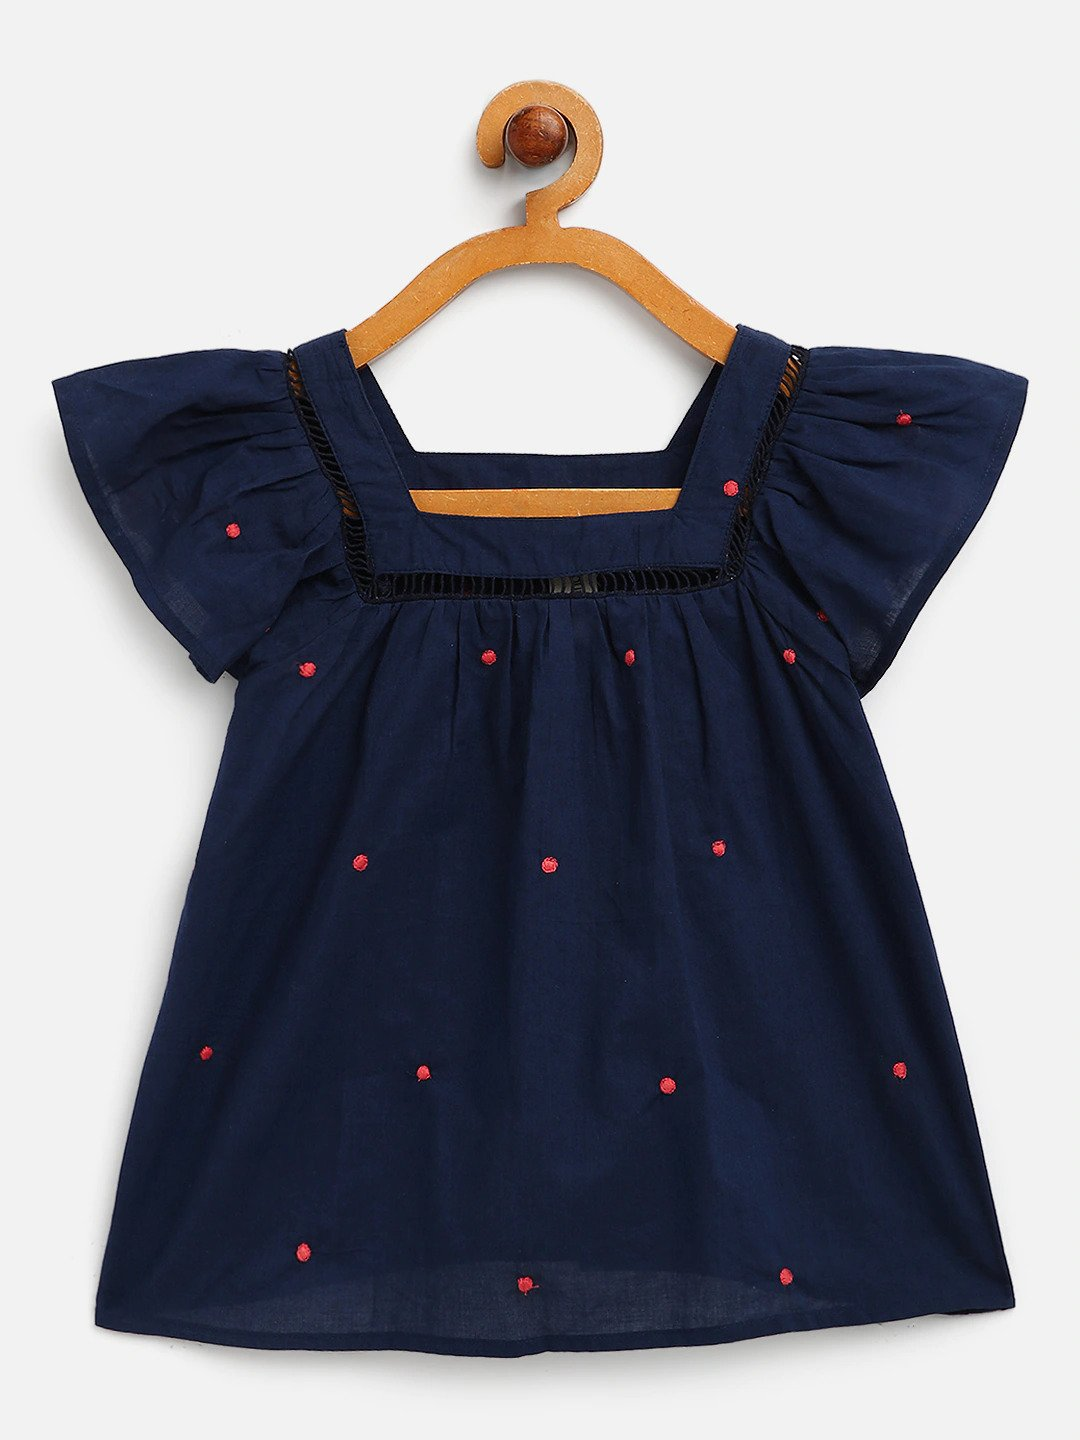 Polka dot Embroidered cotton top with lace detail